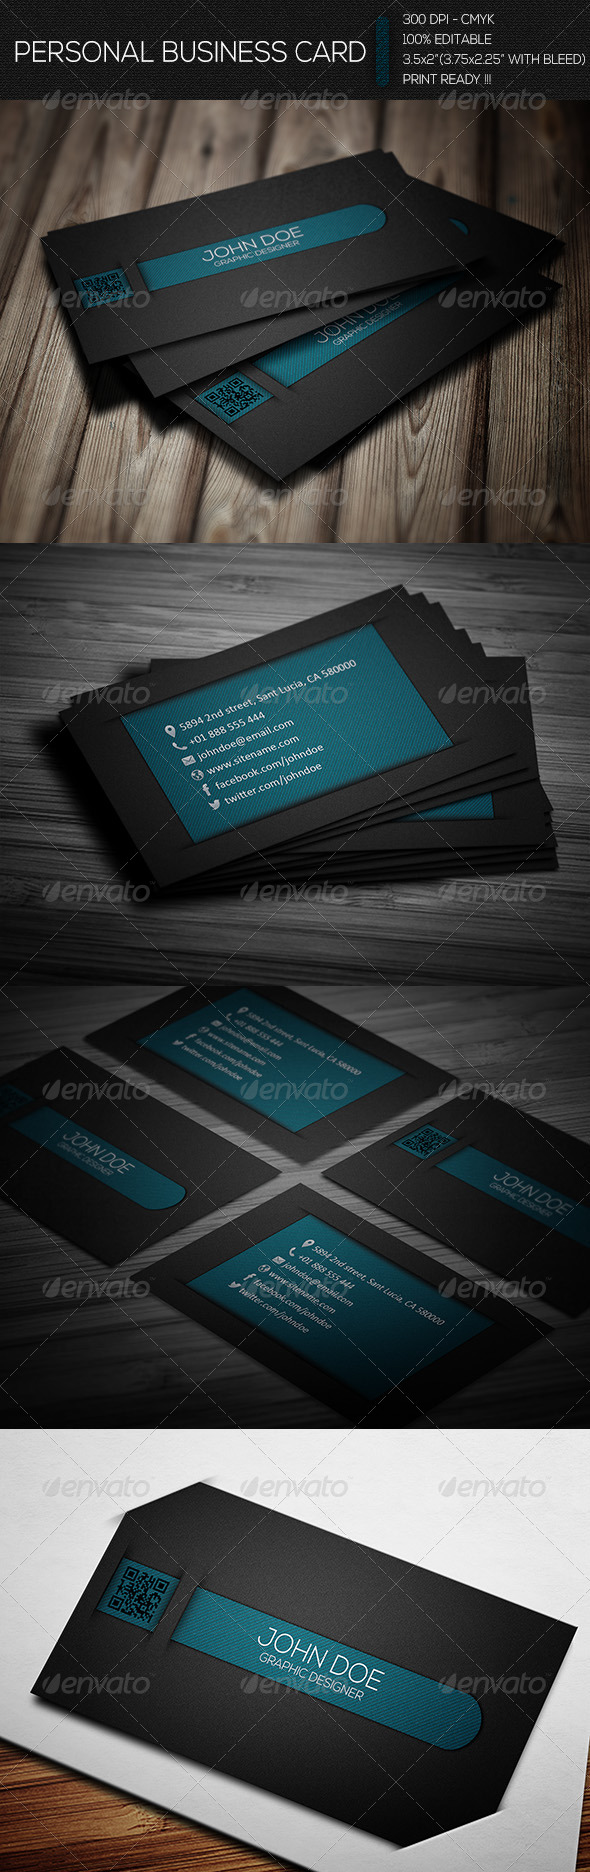 GraphicRiver Creative Personal Business Card 6665934